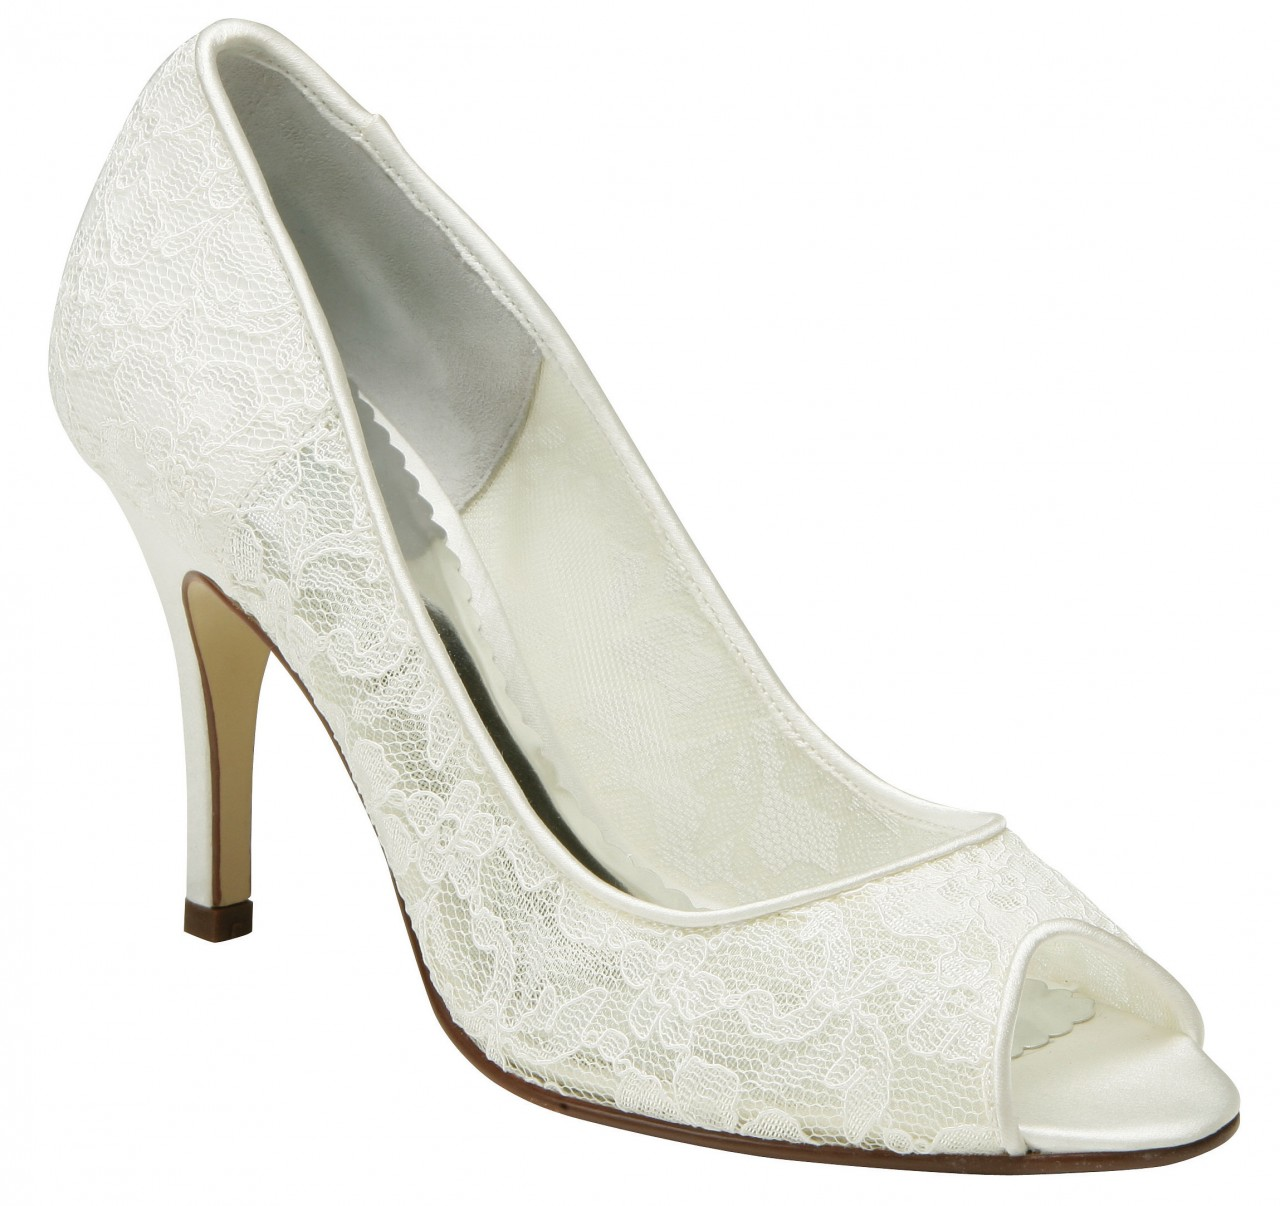 Paradox Belle PACIFIC Ivory Bridal Shoes Lace Wedding Shoes SALE